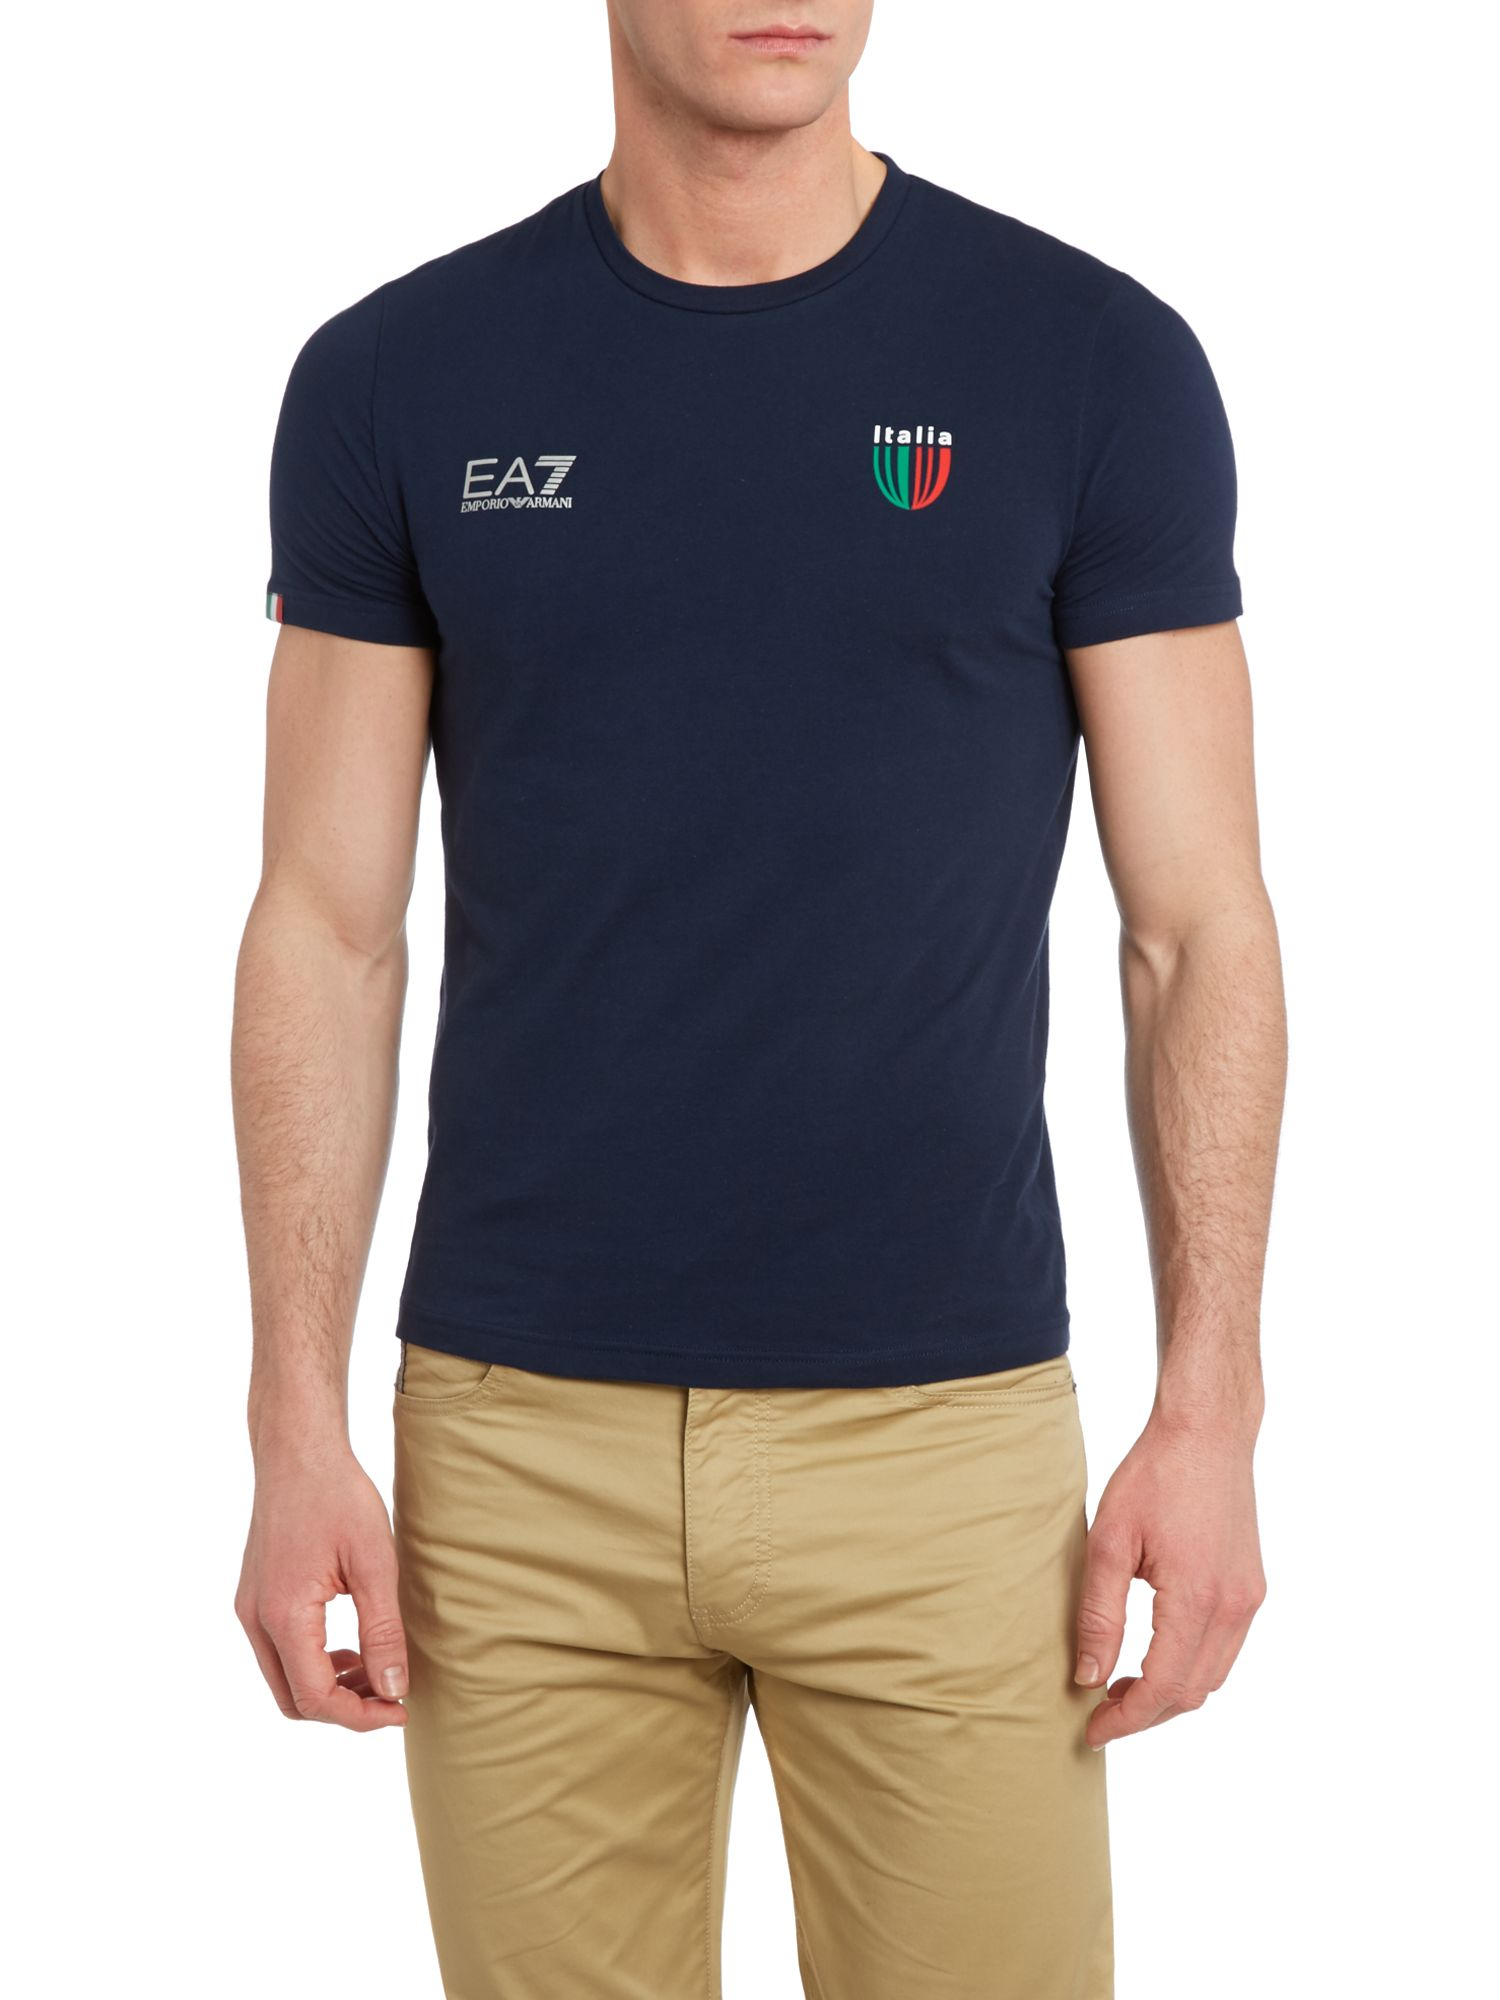 Sochi Italia team t shirt